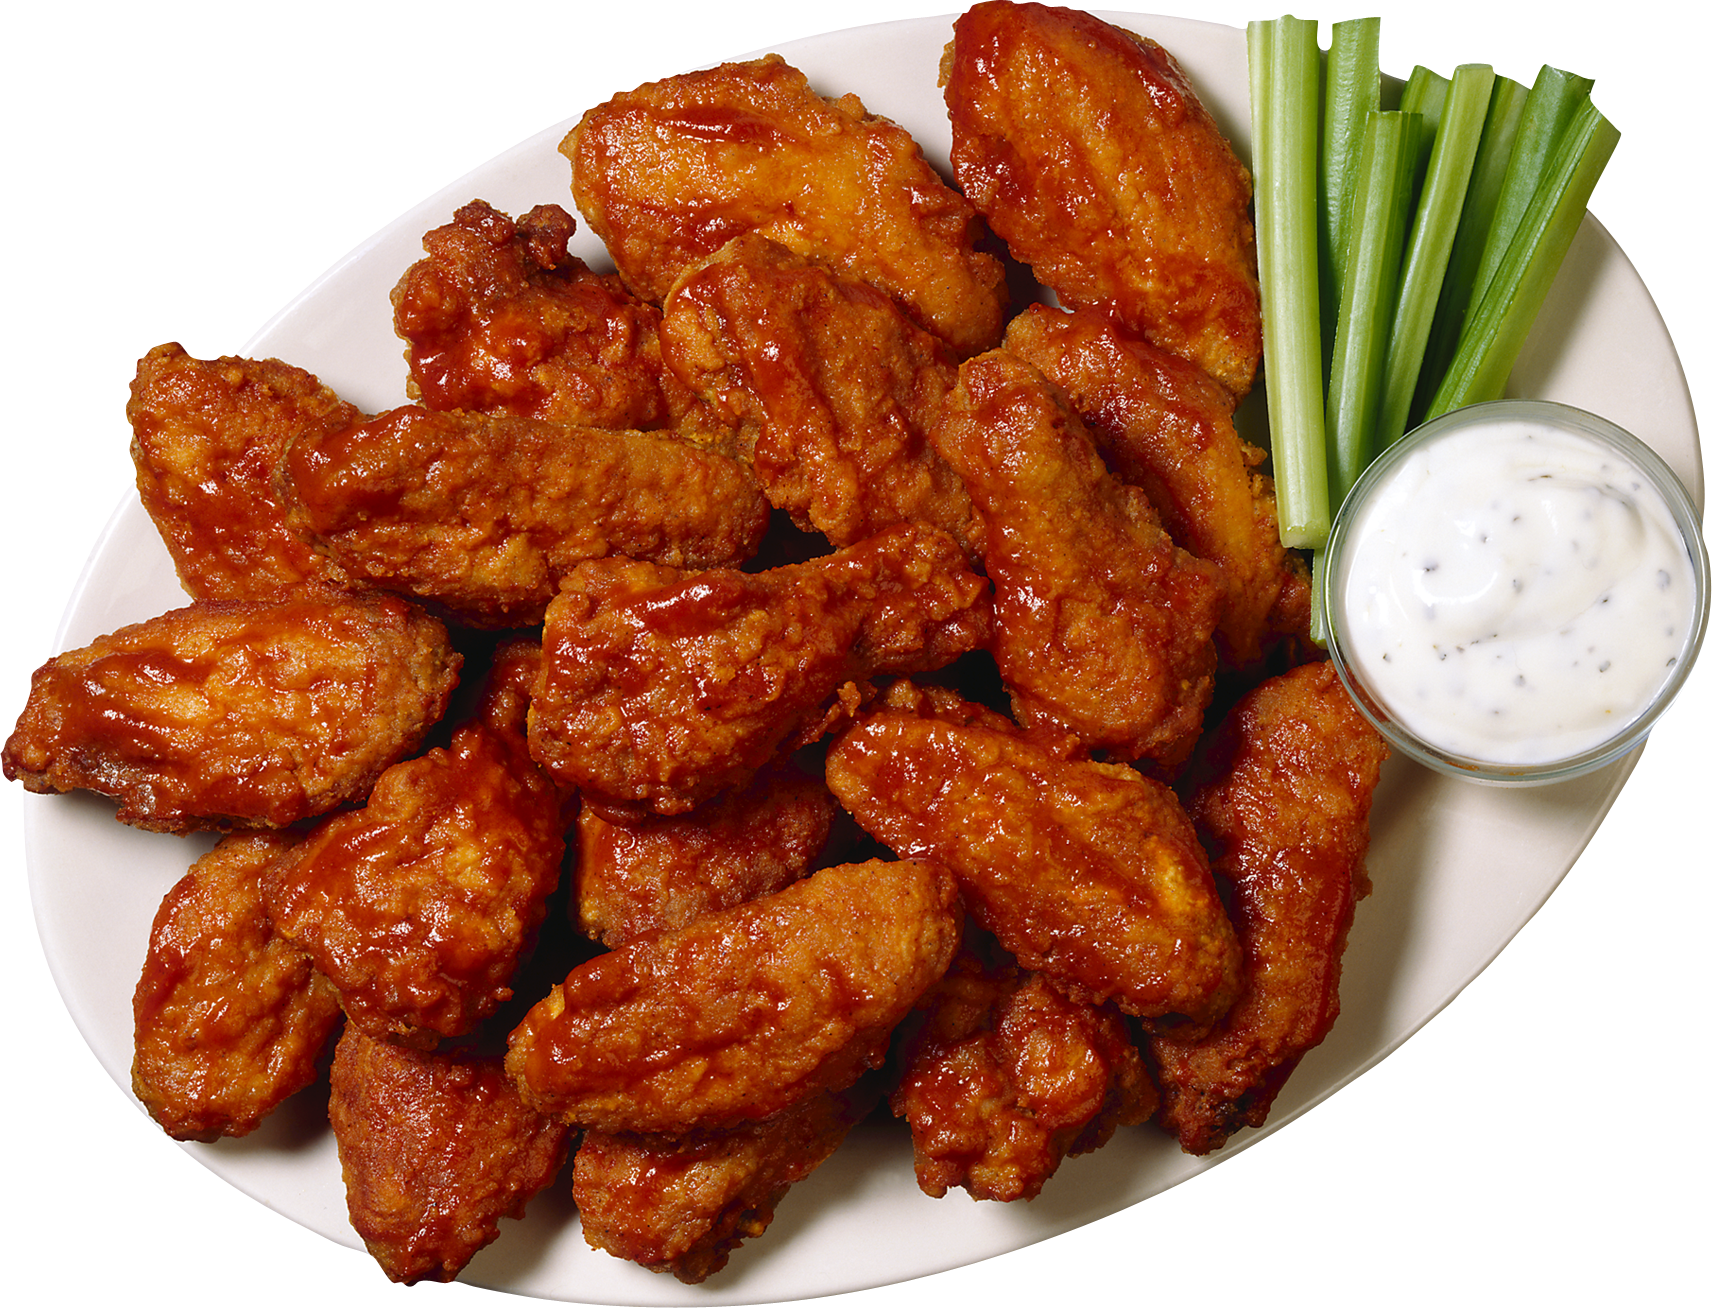 Chicken wing transparent png. Fried image purepng free